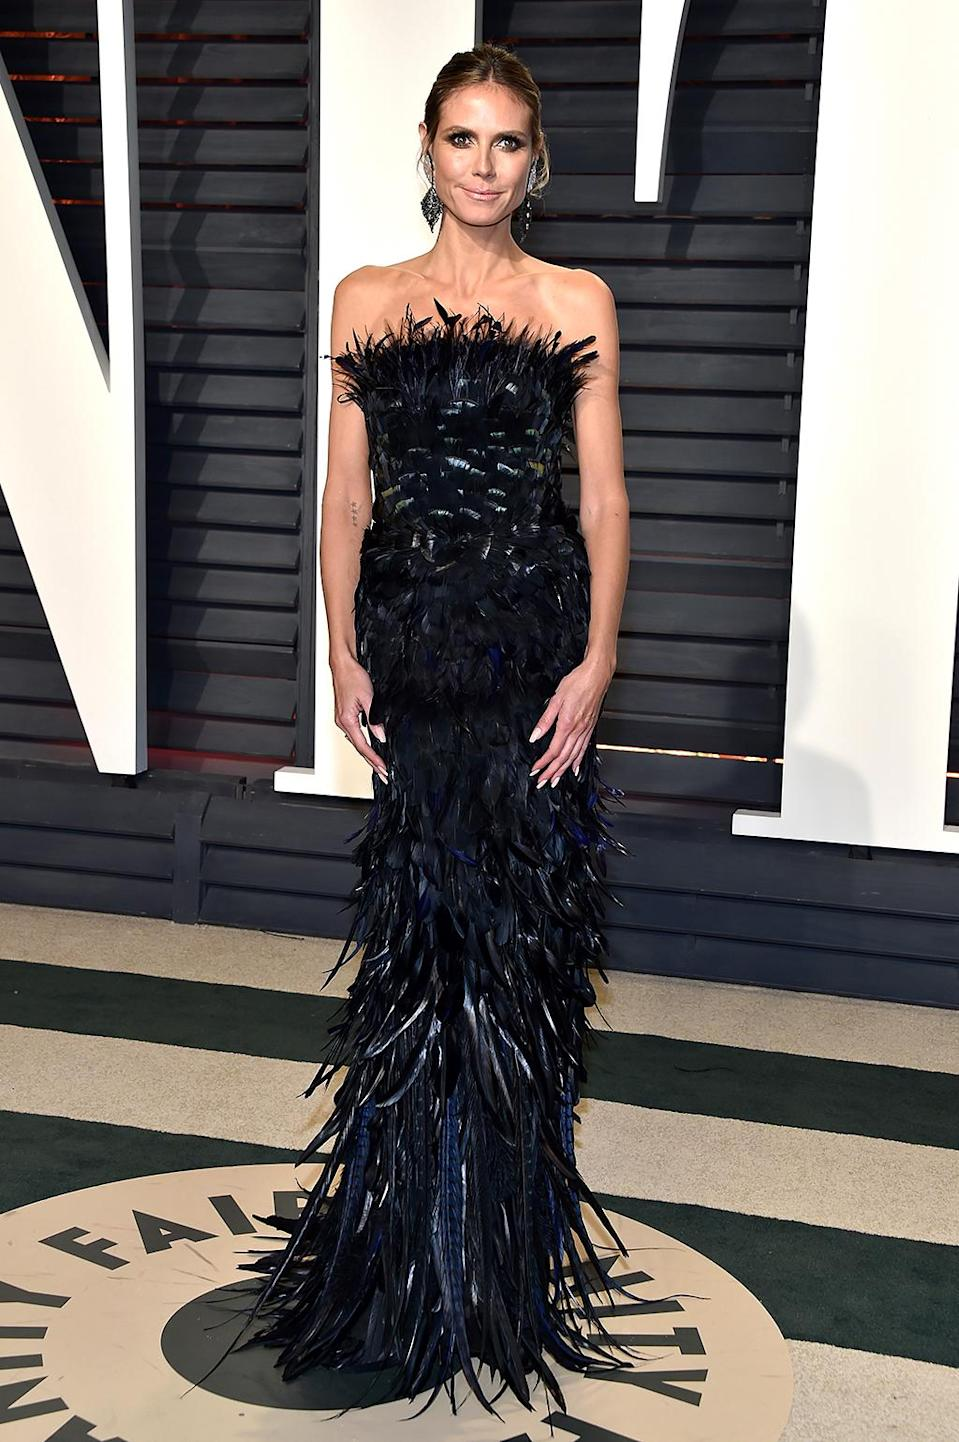 <p>Heidi Klum attends the 2017 Vanity Fair Oscar Party hosted by Graydon Carter at Wallis Annenberg Center for the Performing Arts on February 26, 2017 in Beverly Hills, California. (Photo by Pascal Le Segretain/Getty Images) </p>